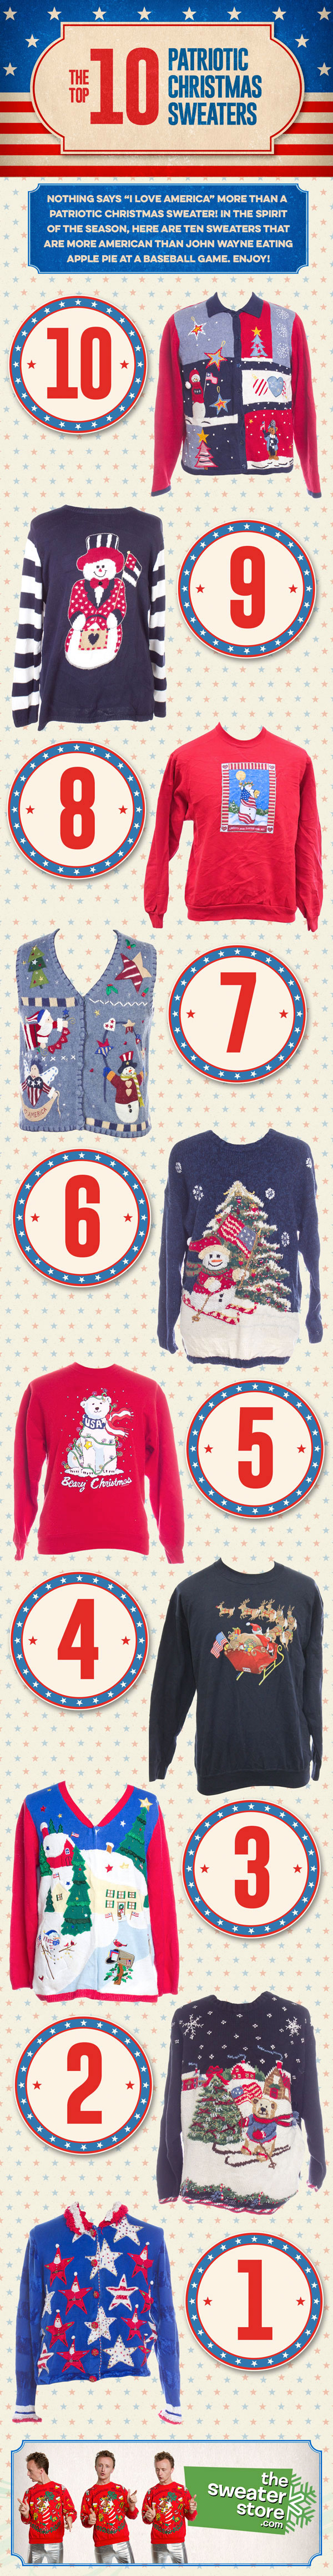 patriotic-ugly-christmas-sweater-infographic-the-sweater-store-dotcom